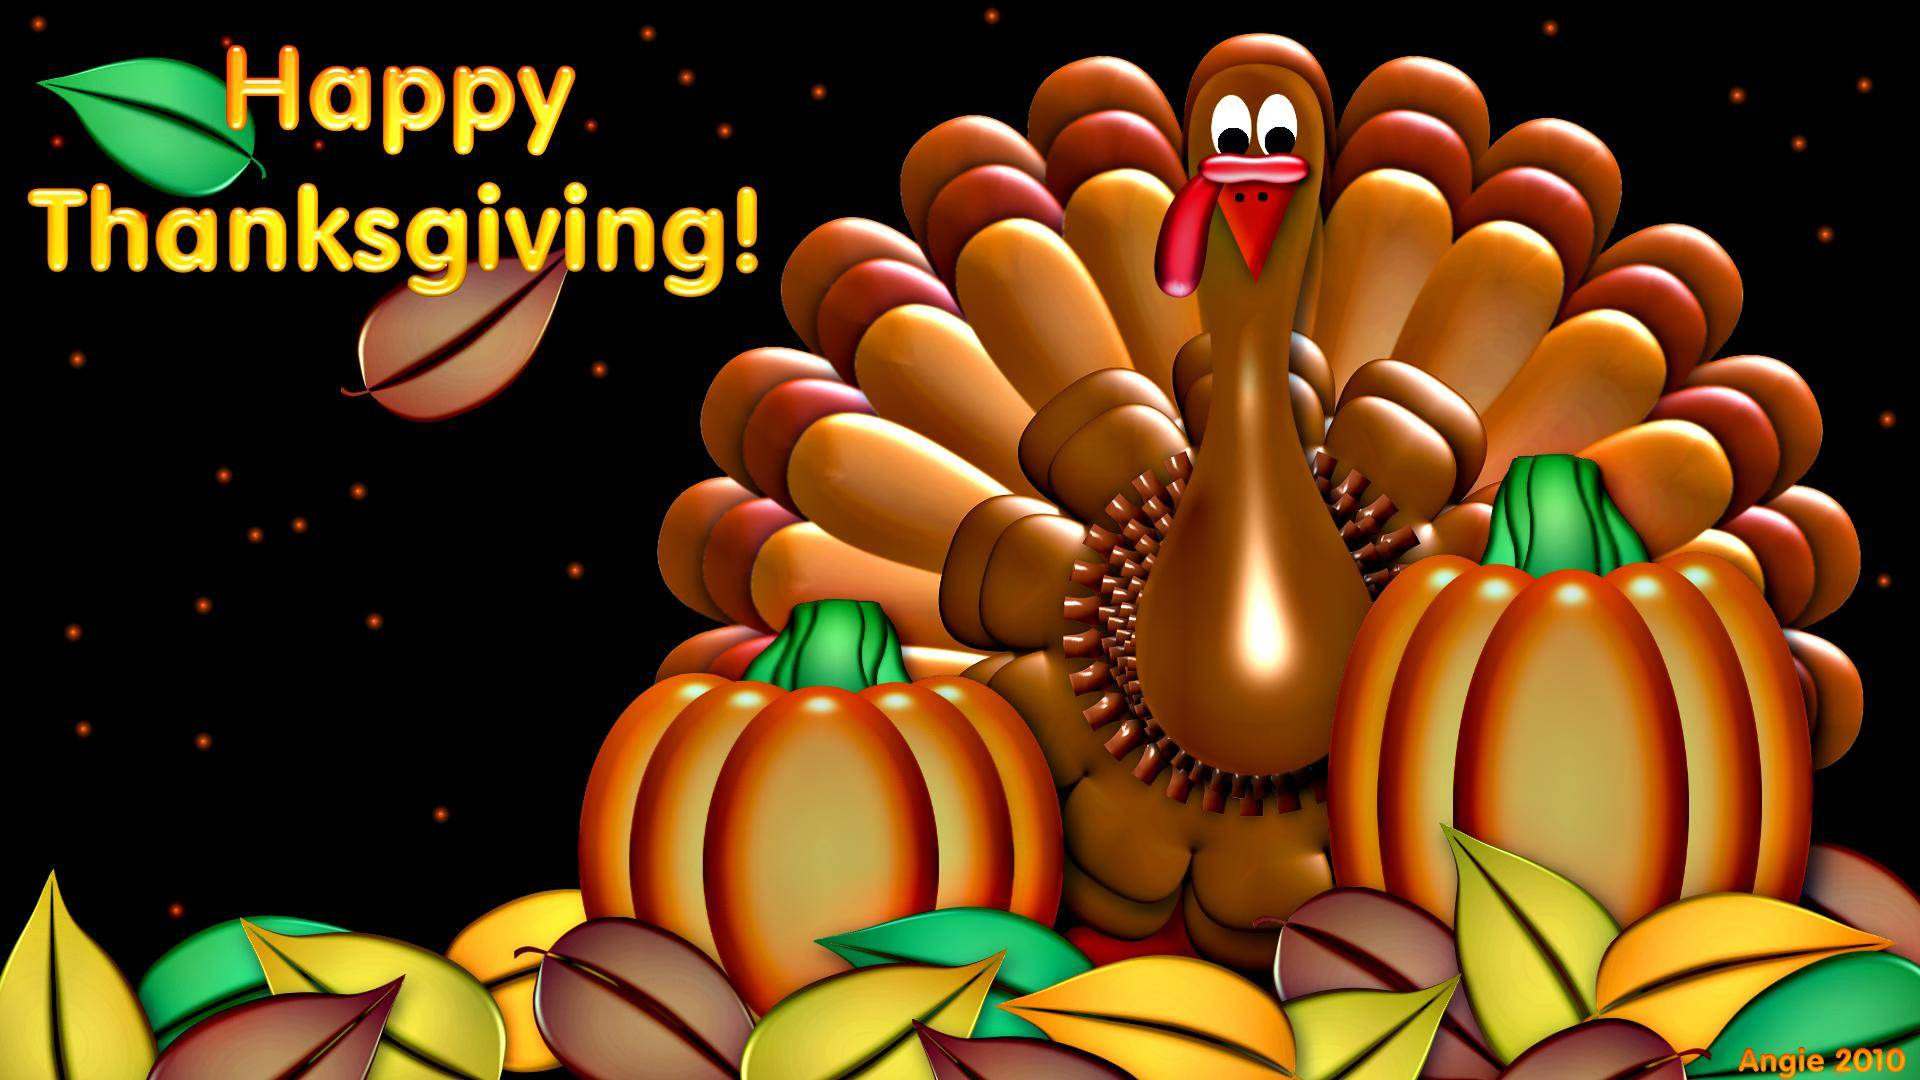 Funny Thanksgiving Wallpaper Backgrounds #8779645